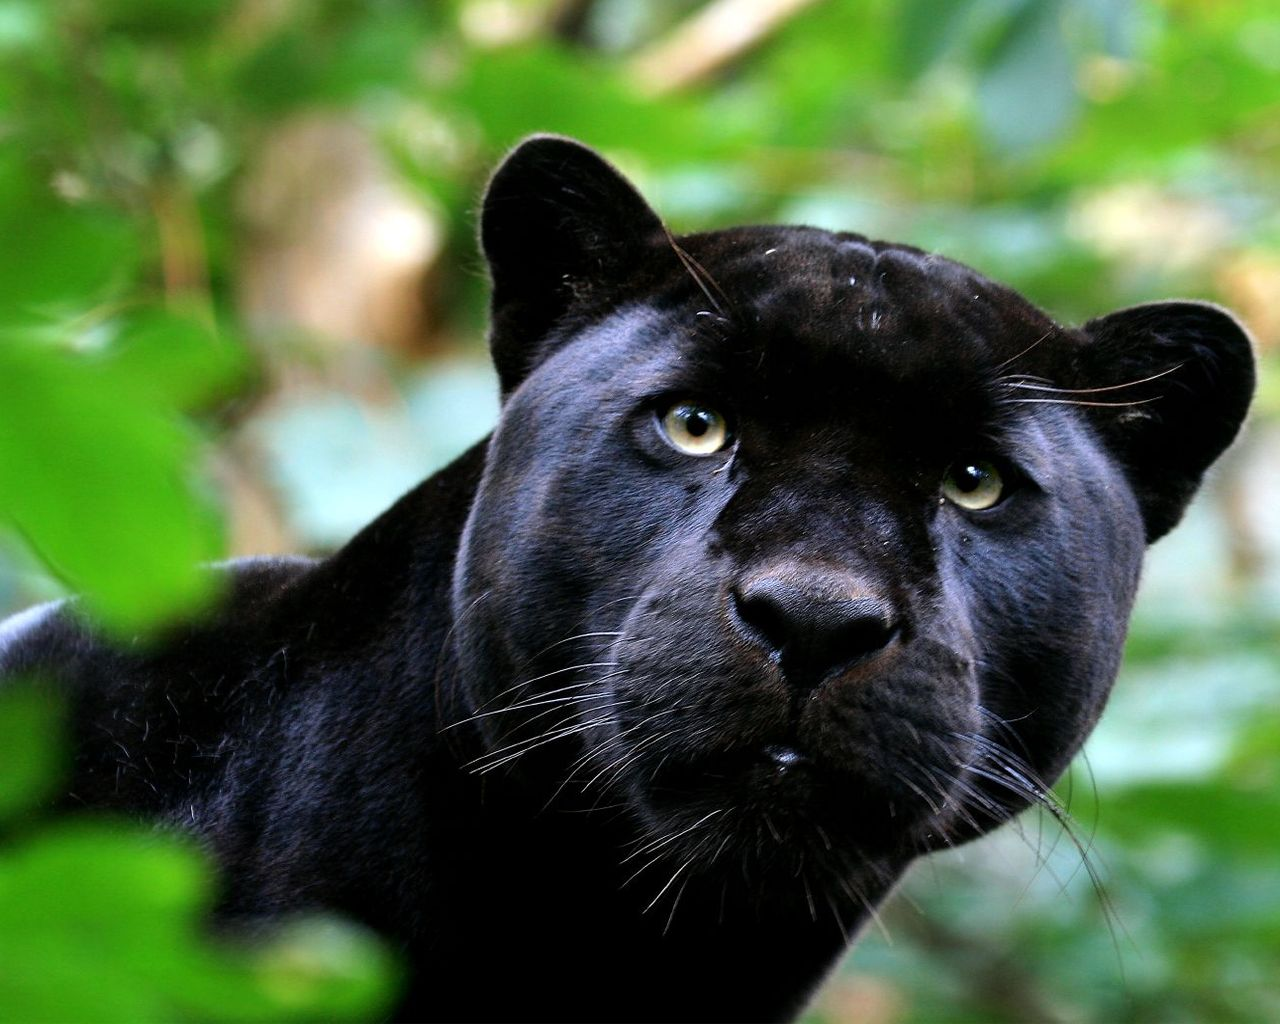 Cute Black Panther Wallpaper 15779